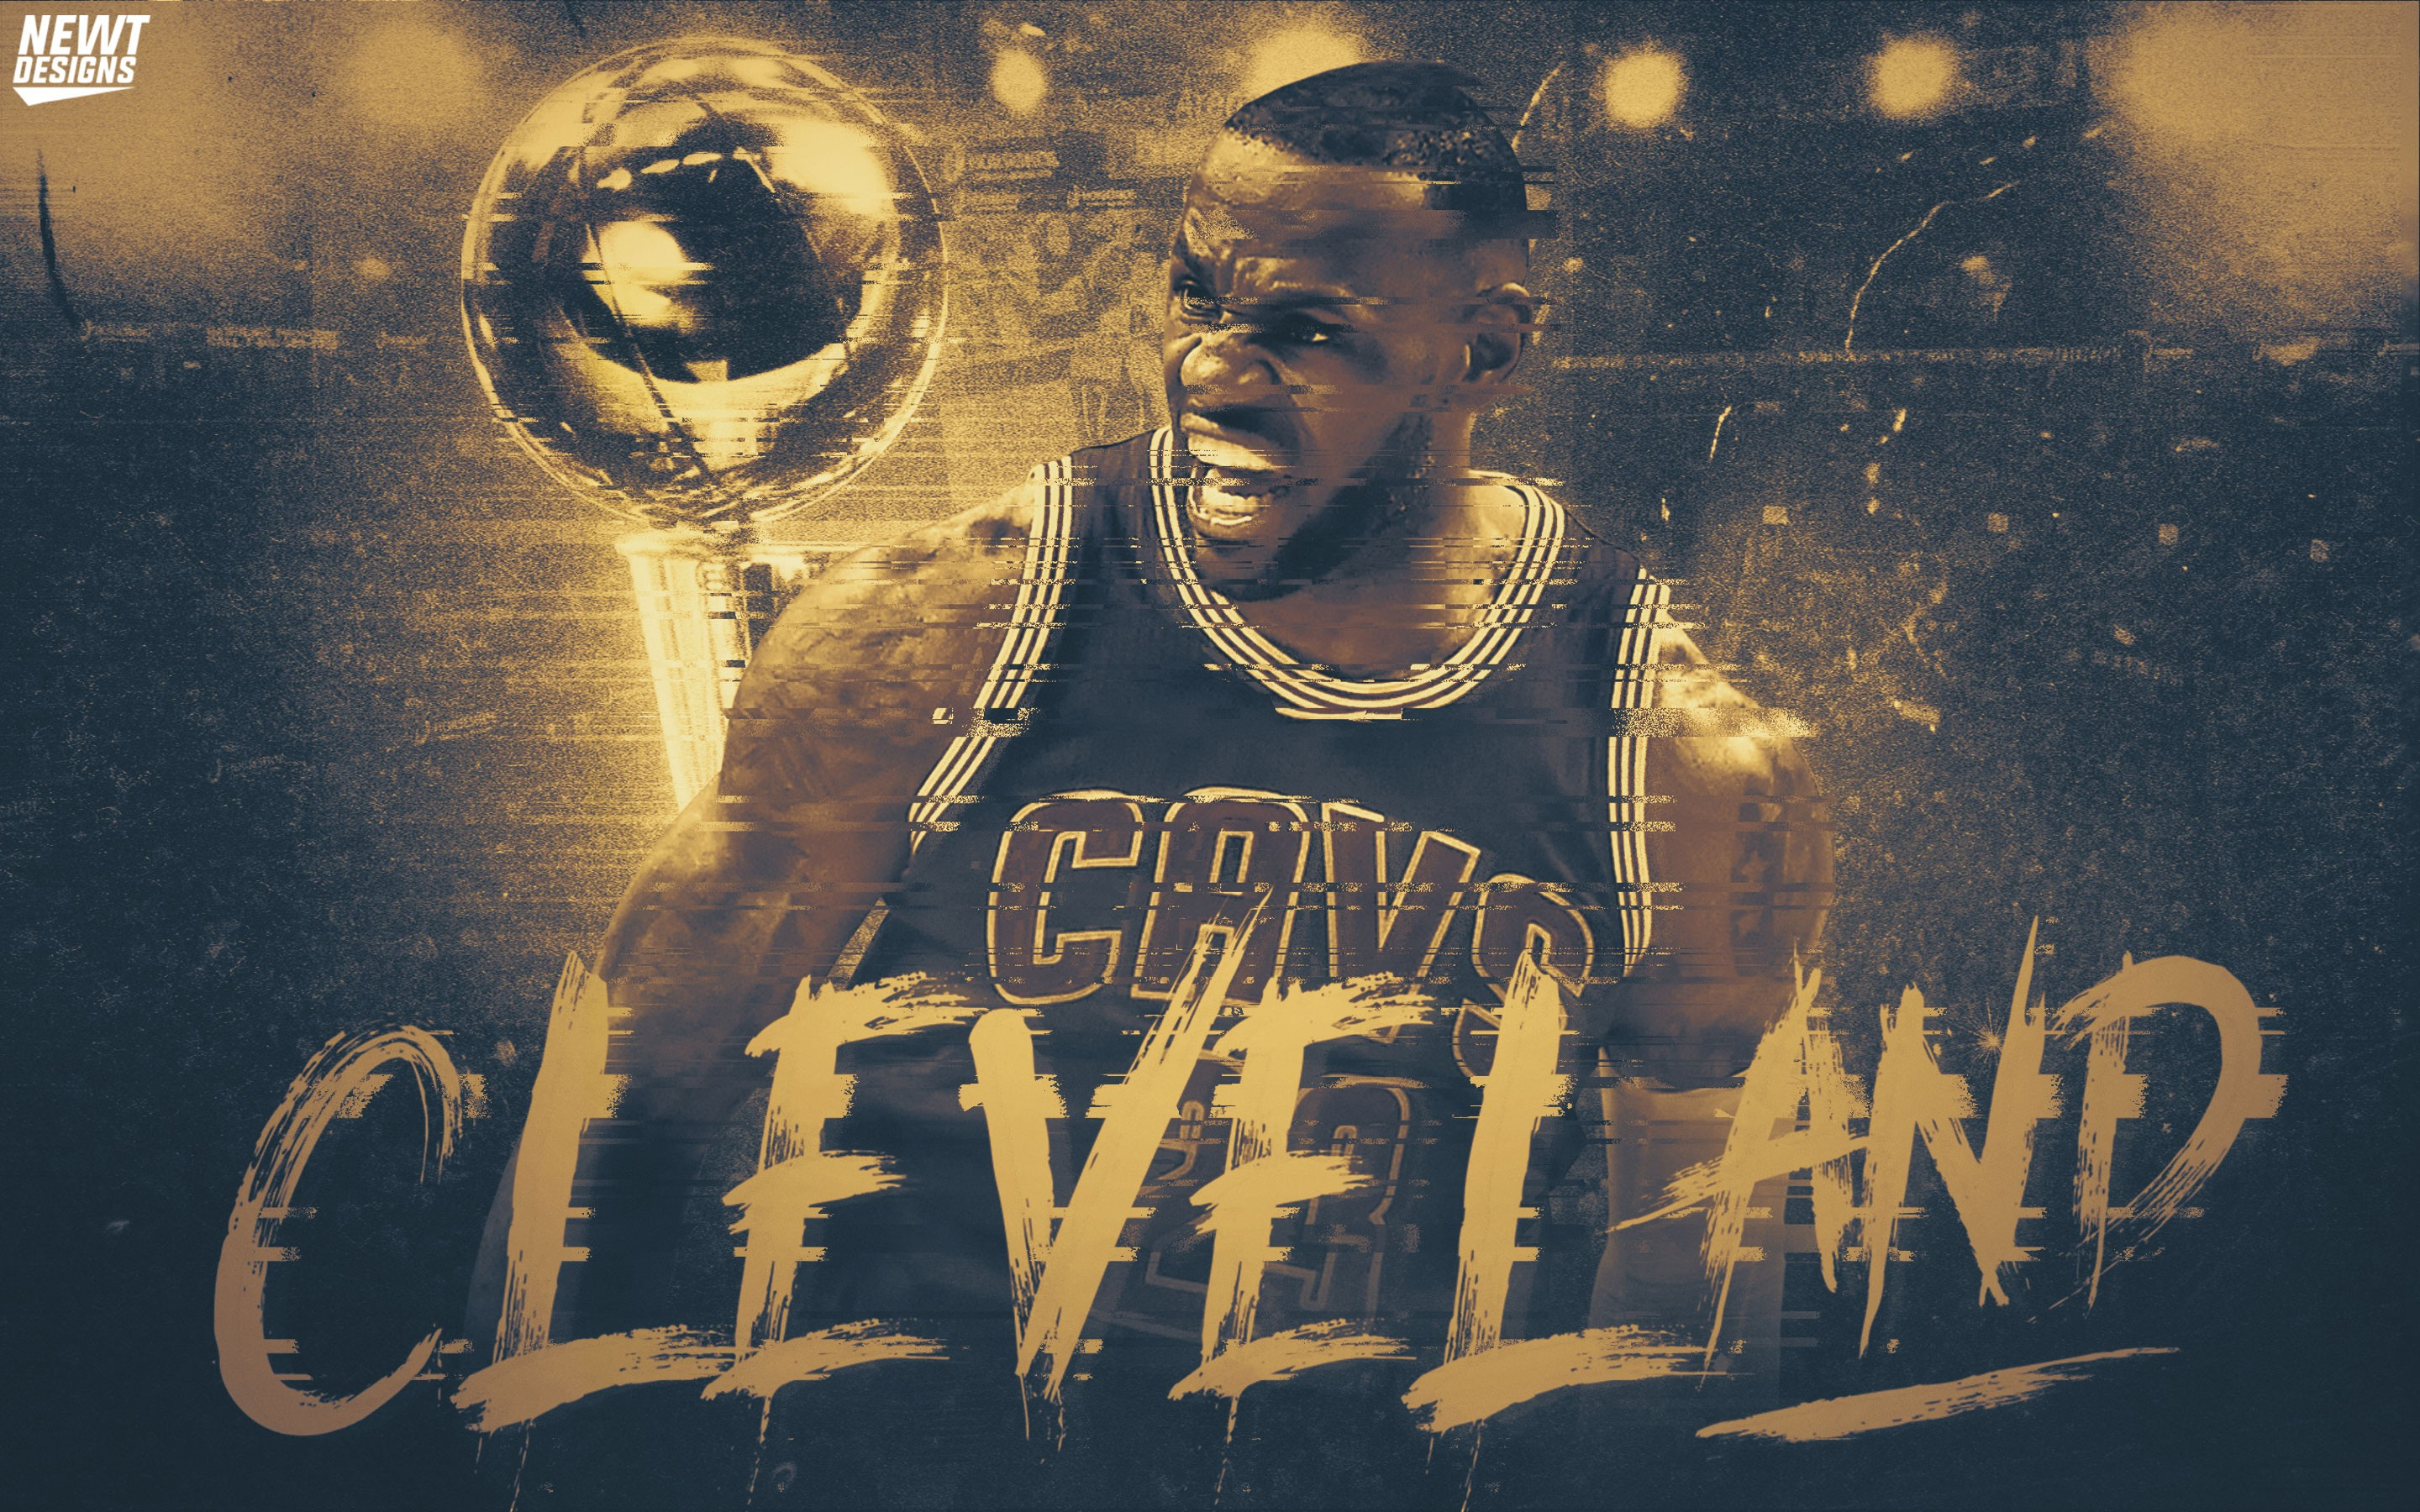 Lebron James Wallpaper ·① Download Free Amazing High